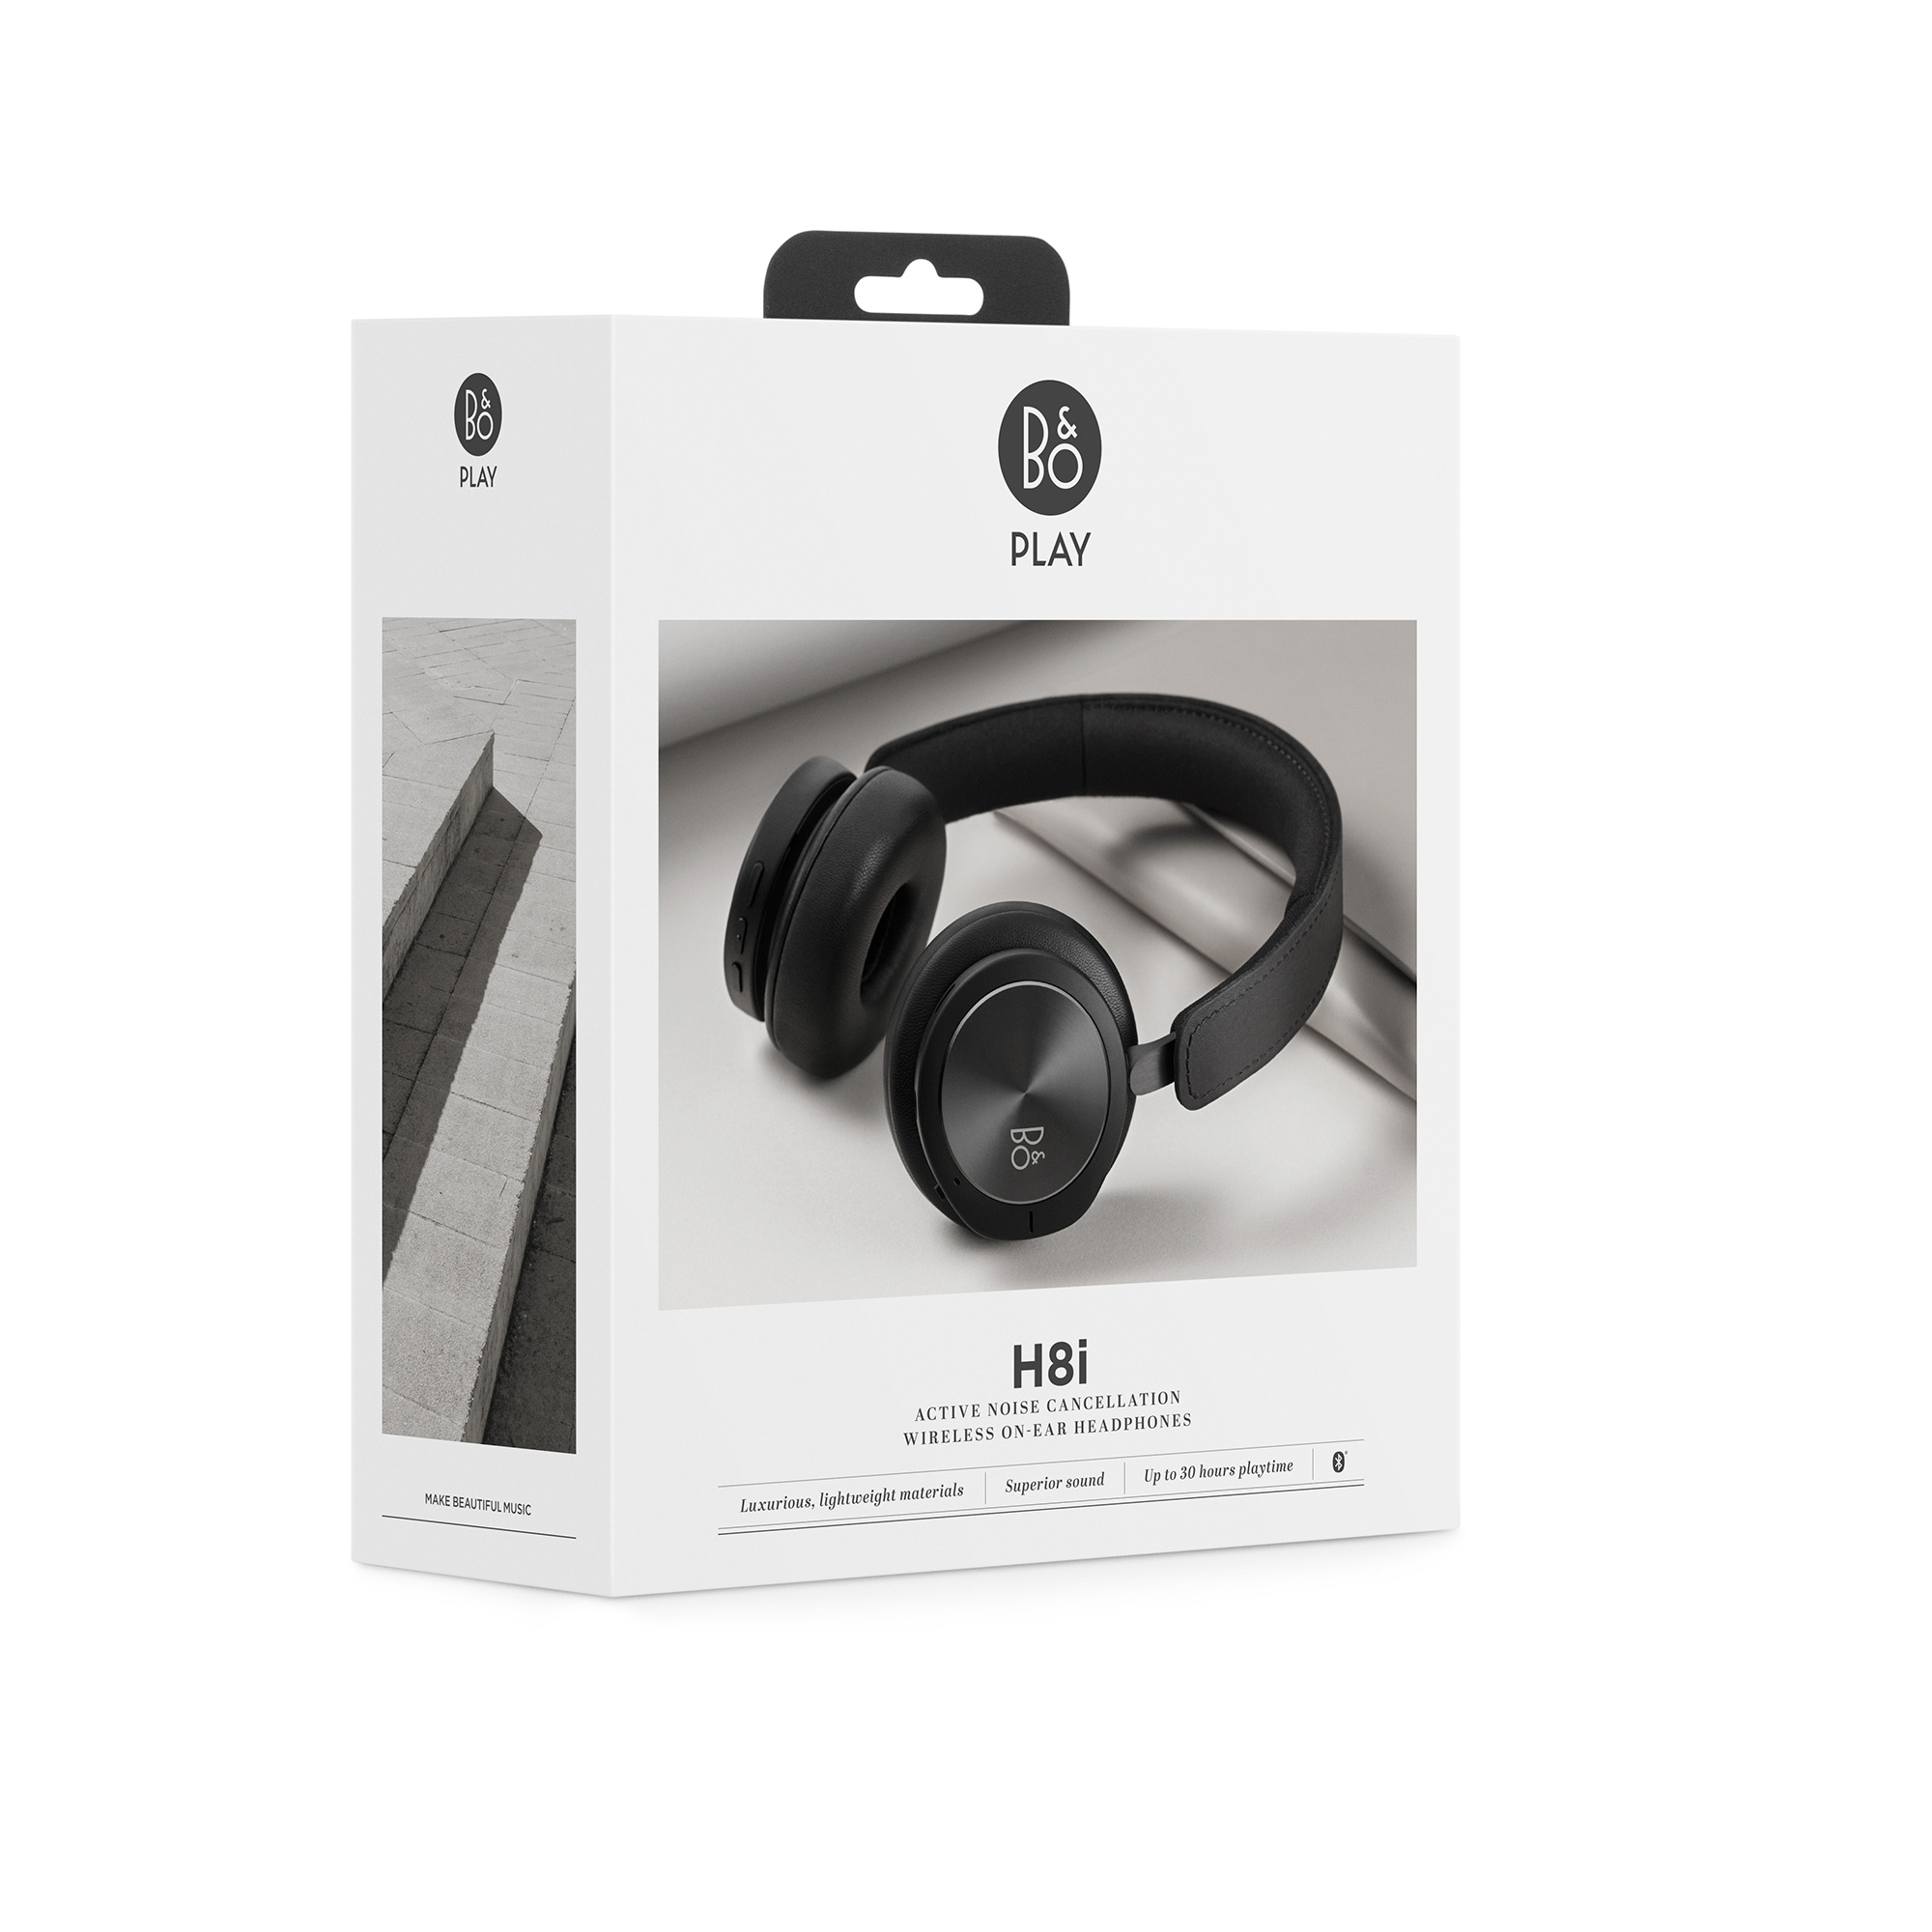 6b9ef7a03a1 H8i Active Noise Cancellation Wireless On-Ear Headphones - Black